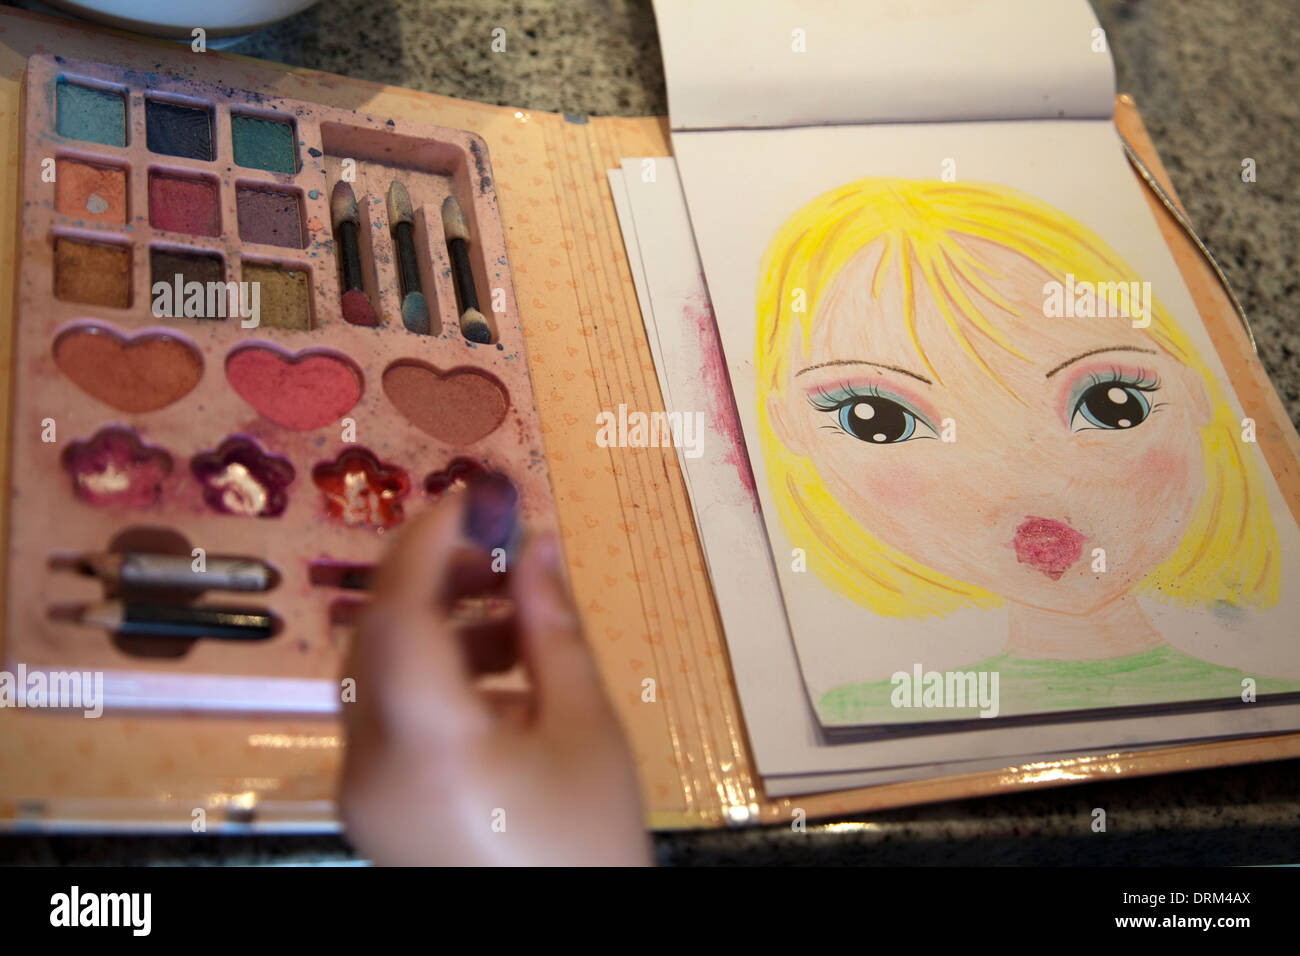 Girl using Make Up Colouring Book Stock Photo: 66210674 - Alamy